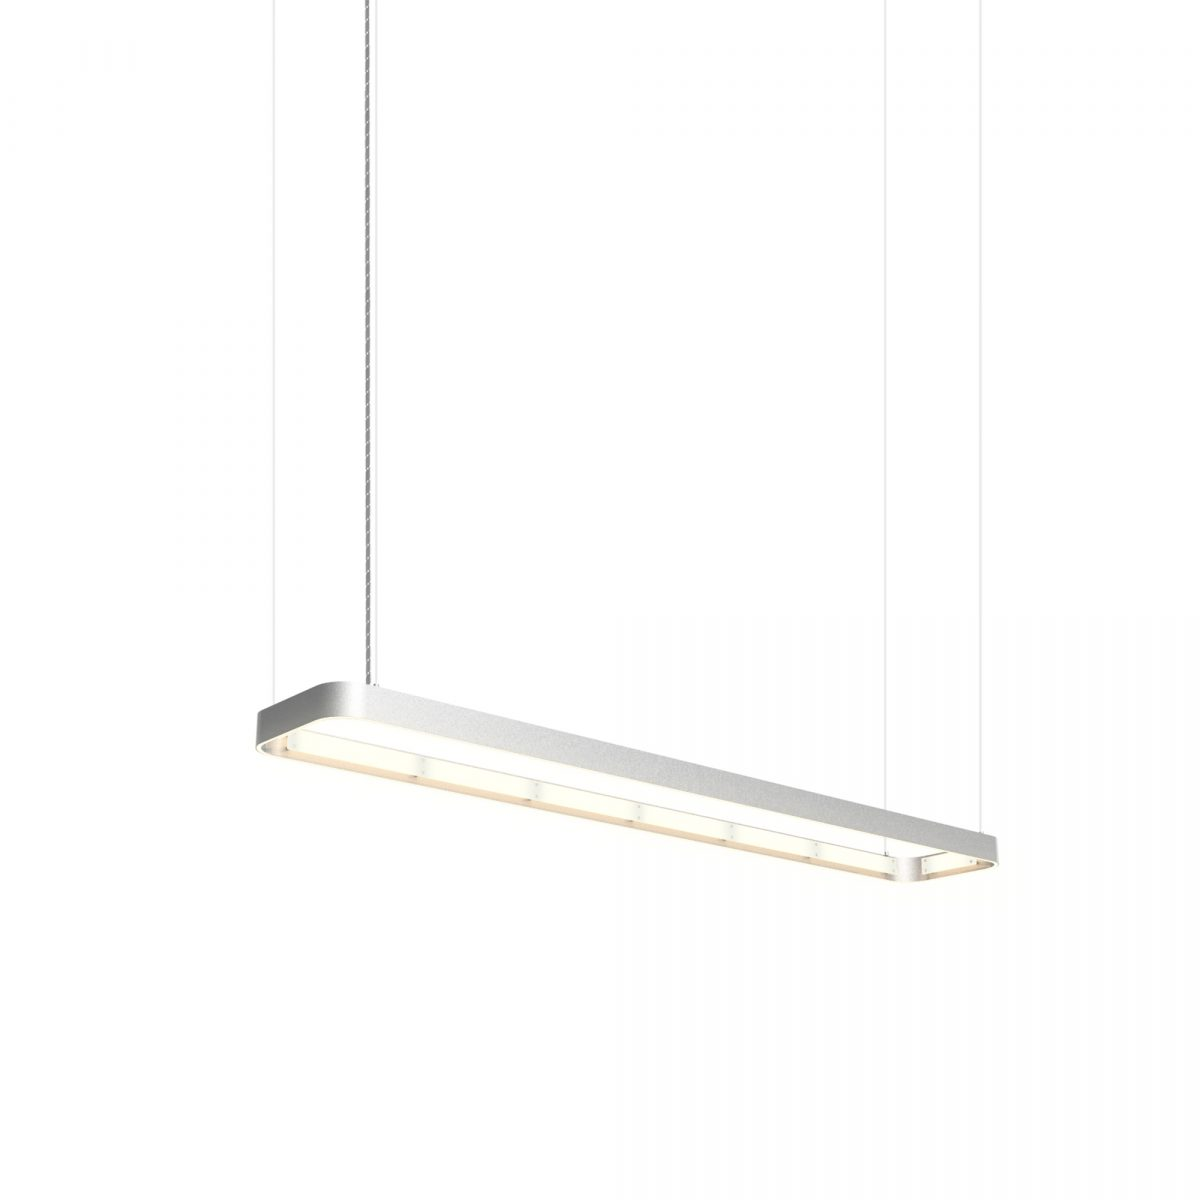 JSPR Eden Deco 25×150 Silver Rectangle